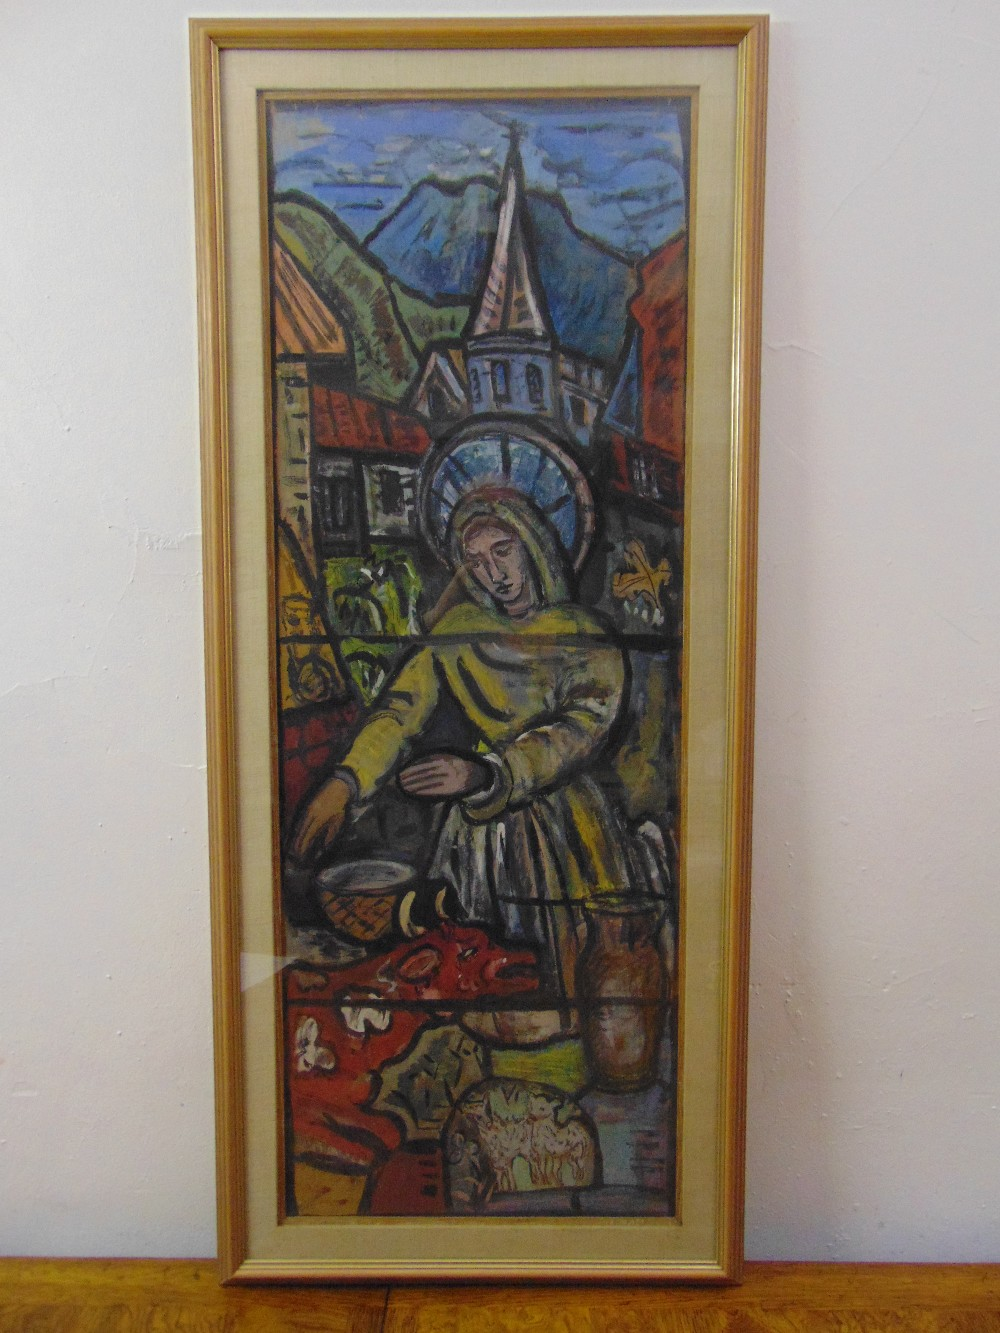 Lot 81 - Evie Sydney Hone 1894-1955, framed and glazed gouache on board study of the stained glass window